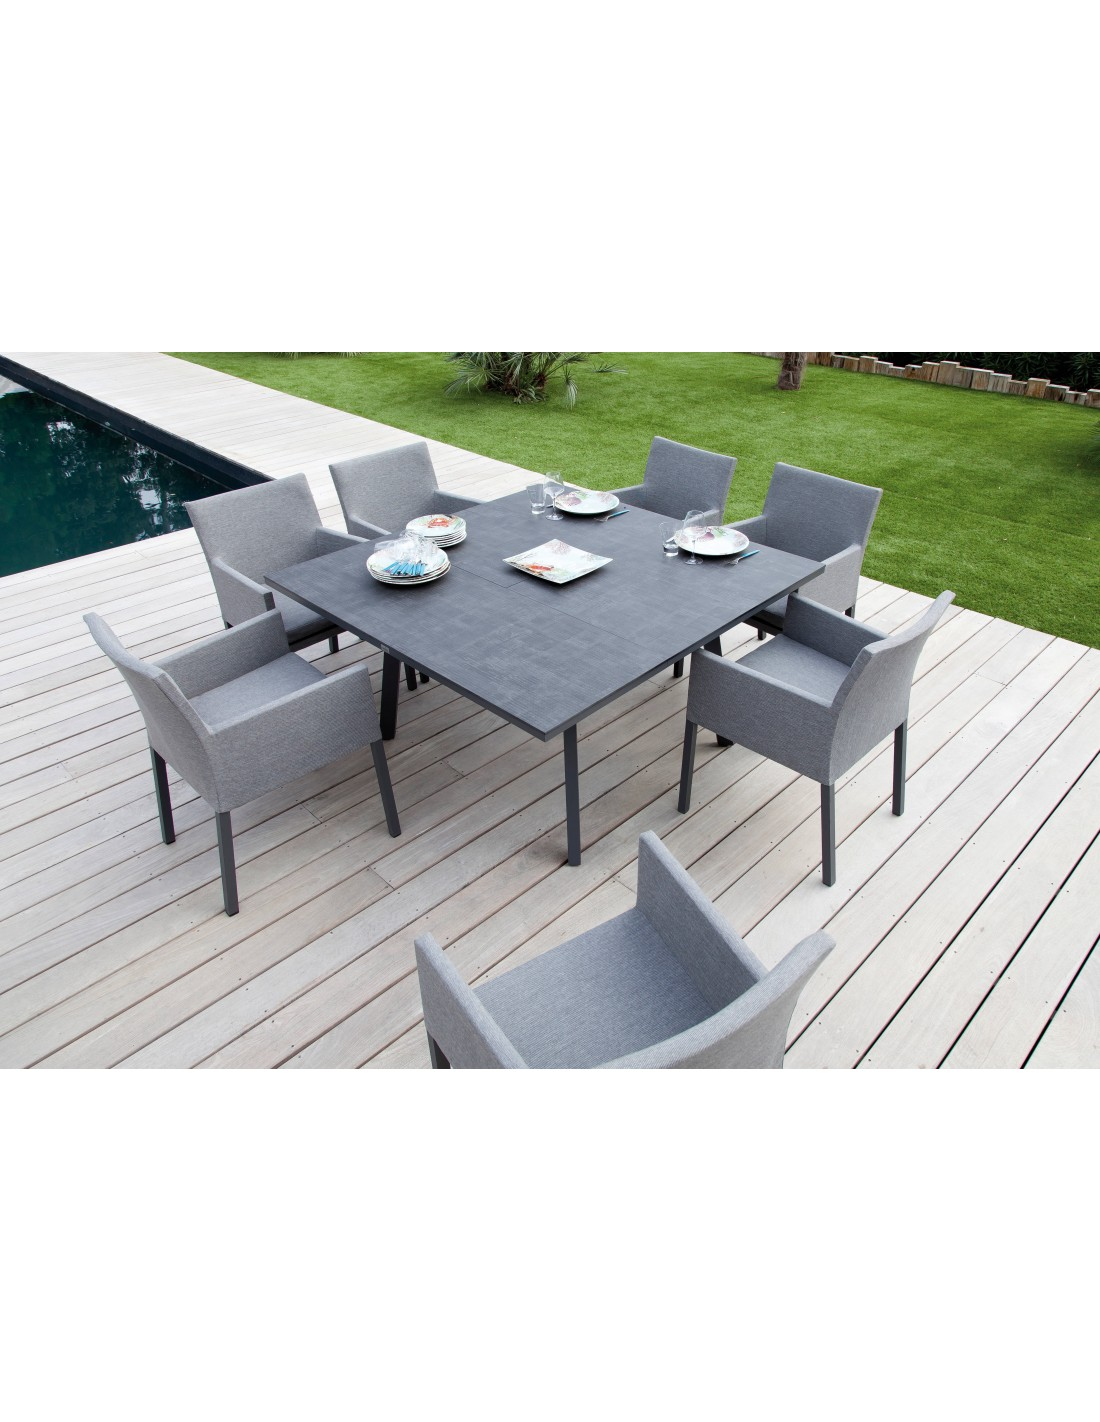 table barsa carr 140 plateau trespa coloris caf ou grey oc o. Black Bedroom Furniture Sets. Home Design Ideas